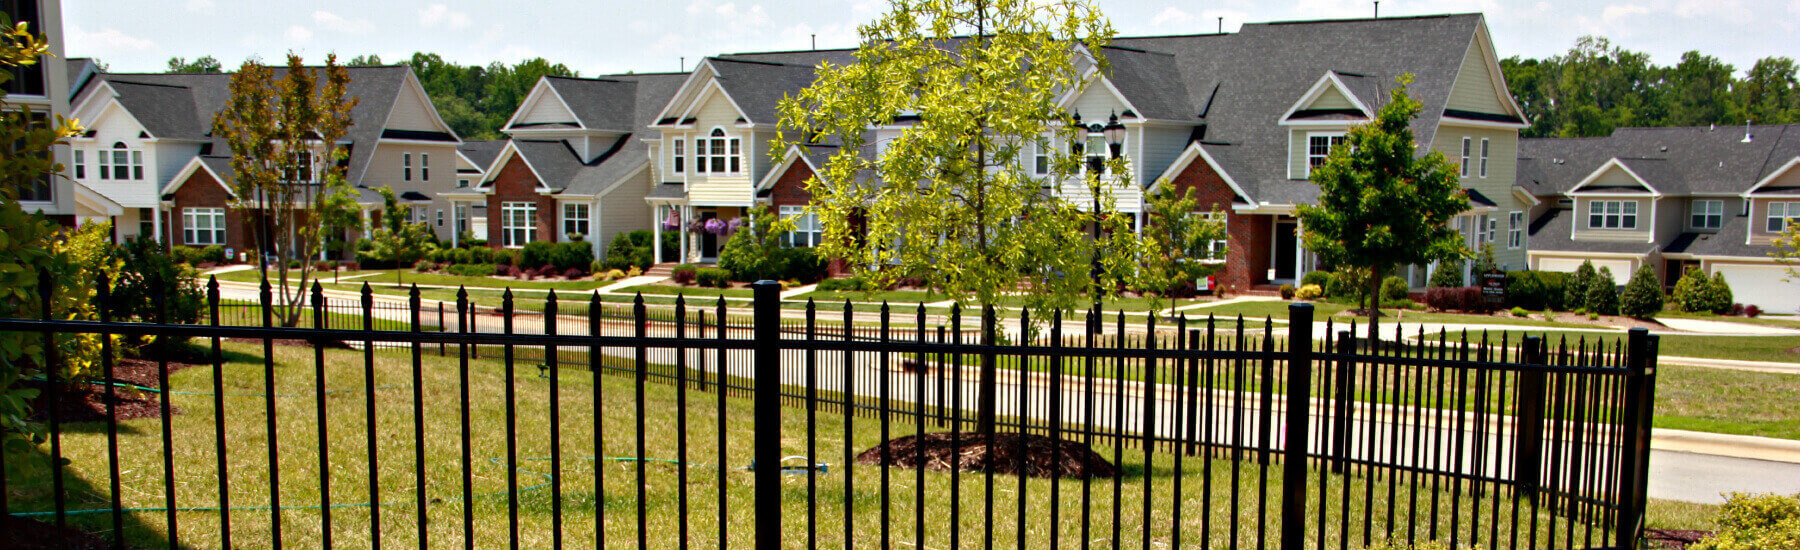 Residential Fencing Charlotte Nc Allison Fence Company